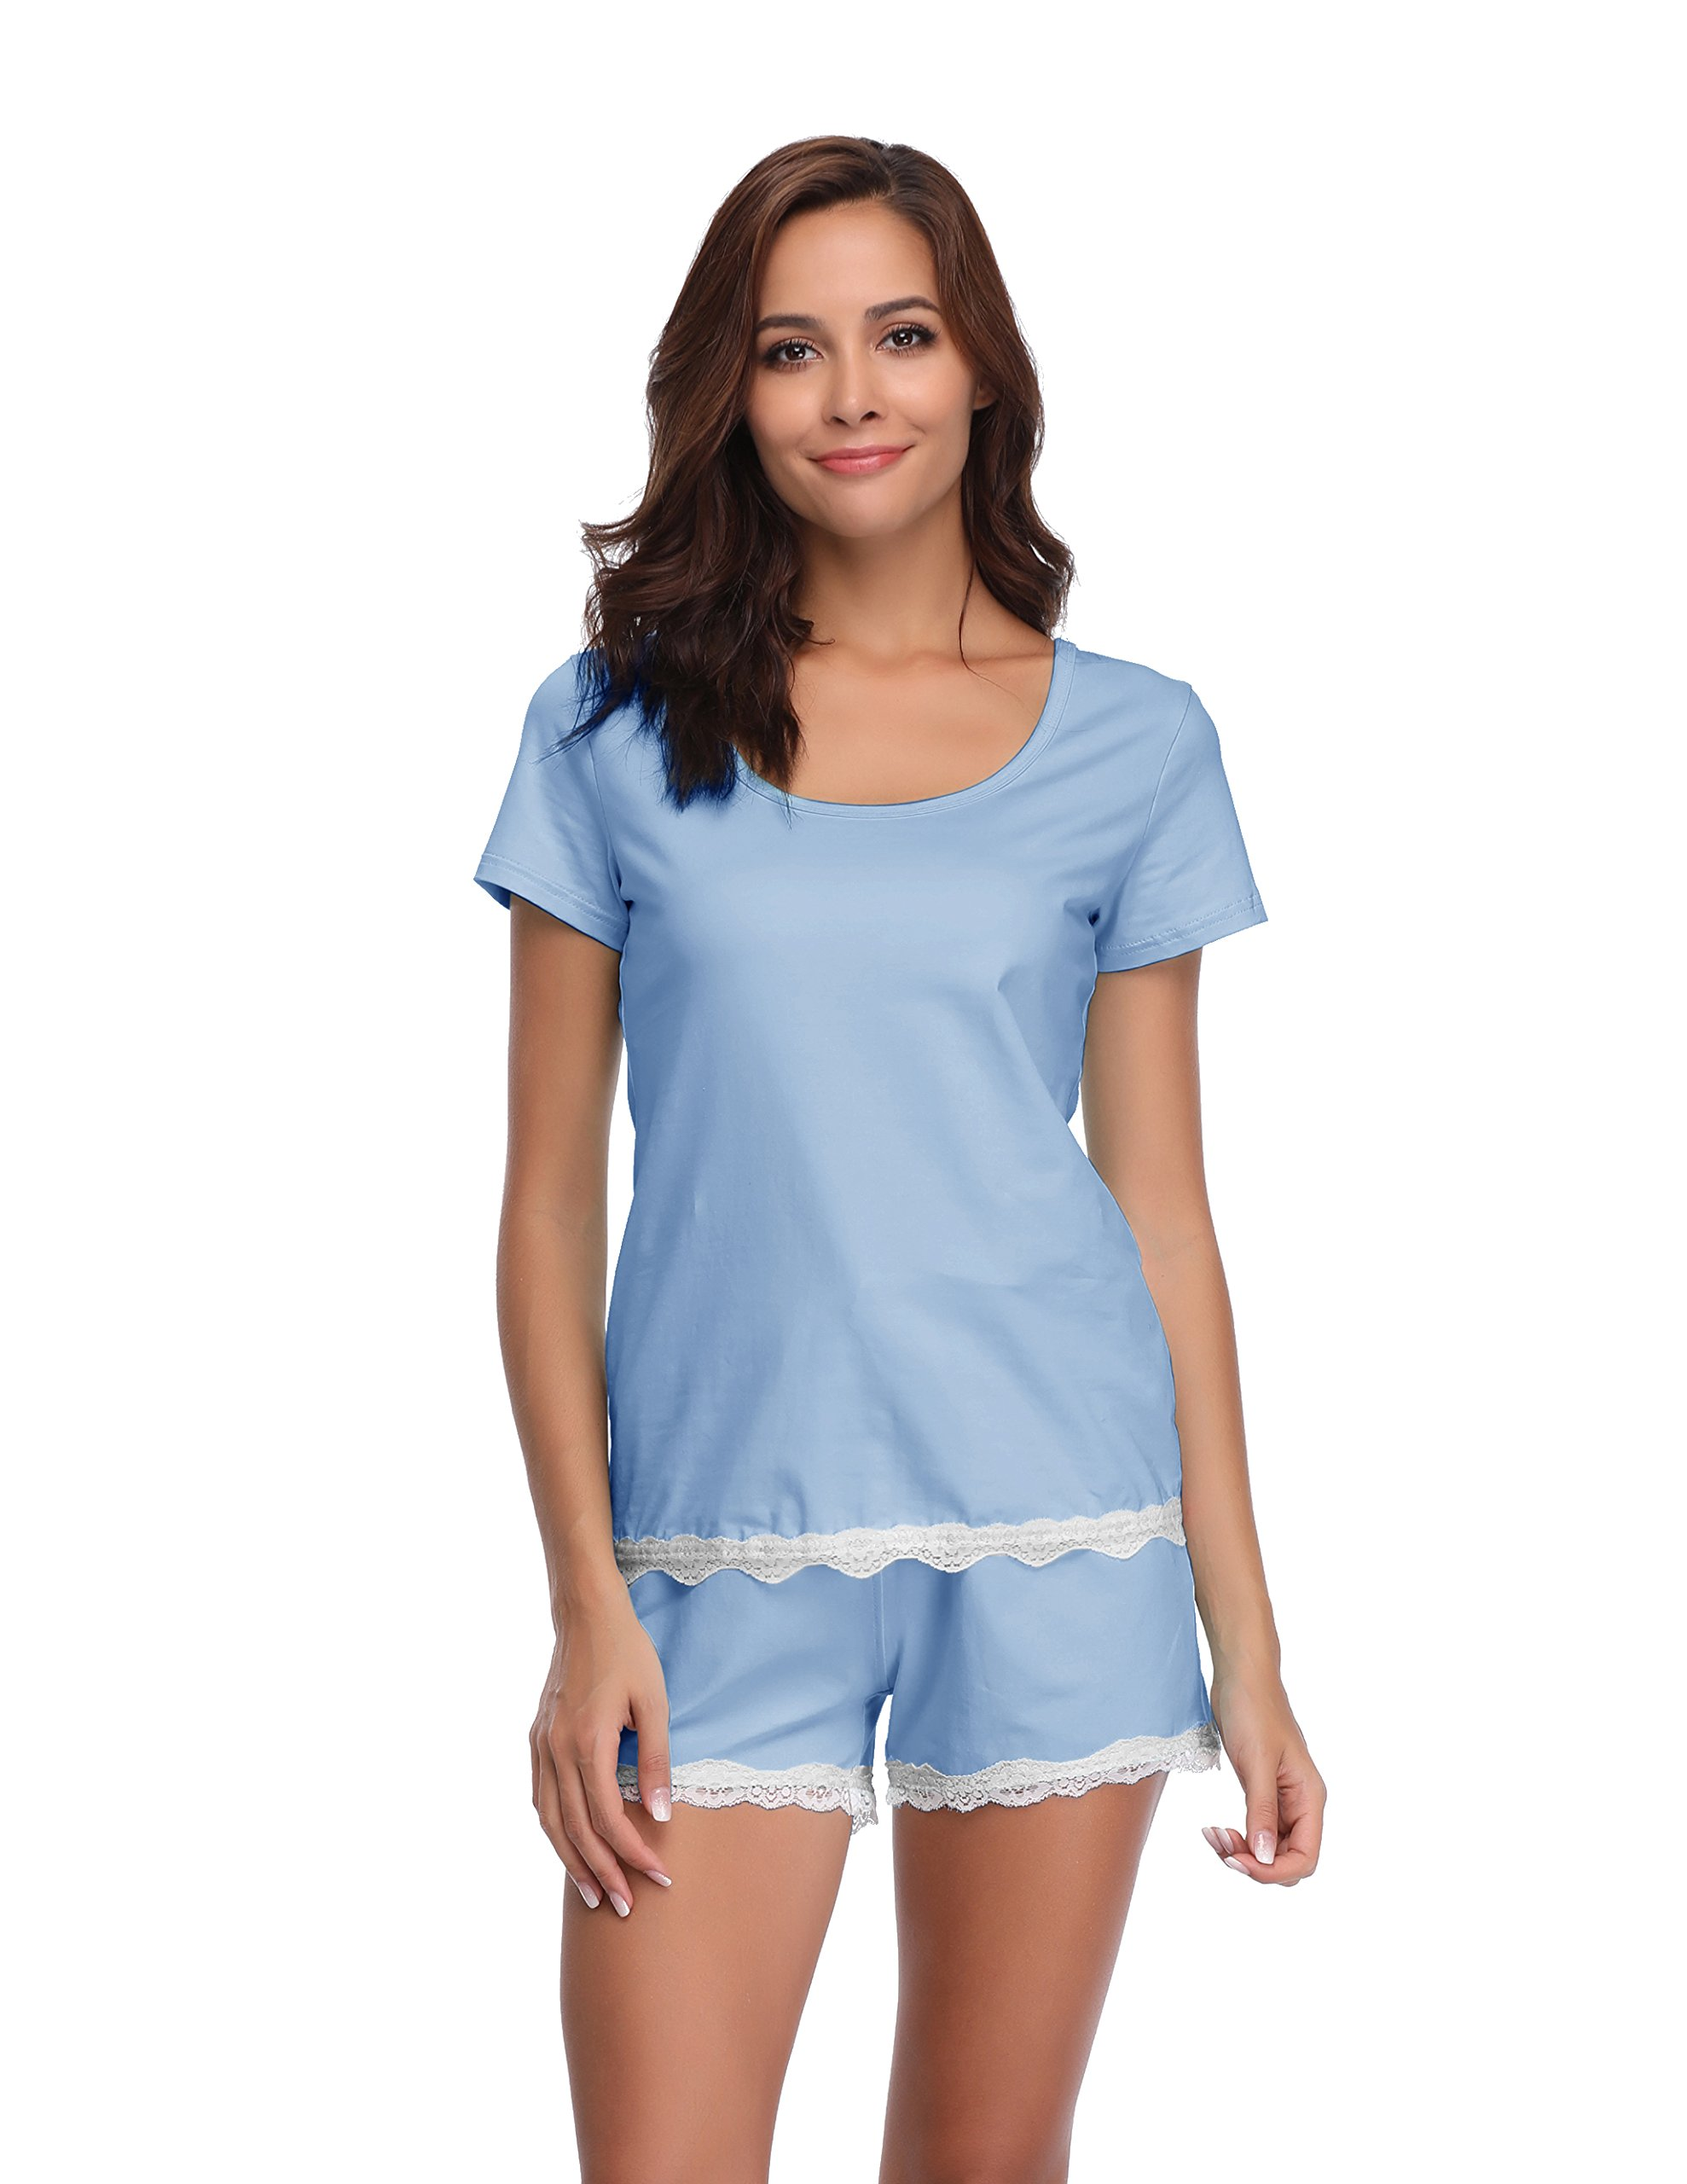 Luvrobes Women's Lace Trim 2-Piece Cotton Short Sleeve Pajama Set(L, Blue)